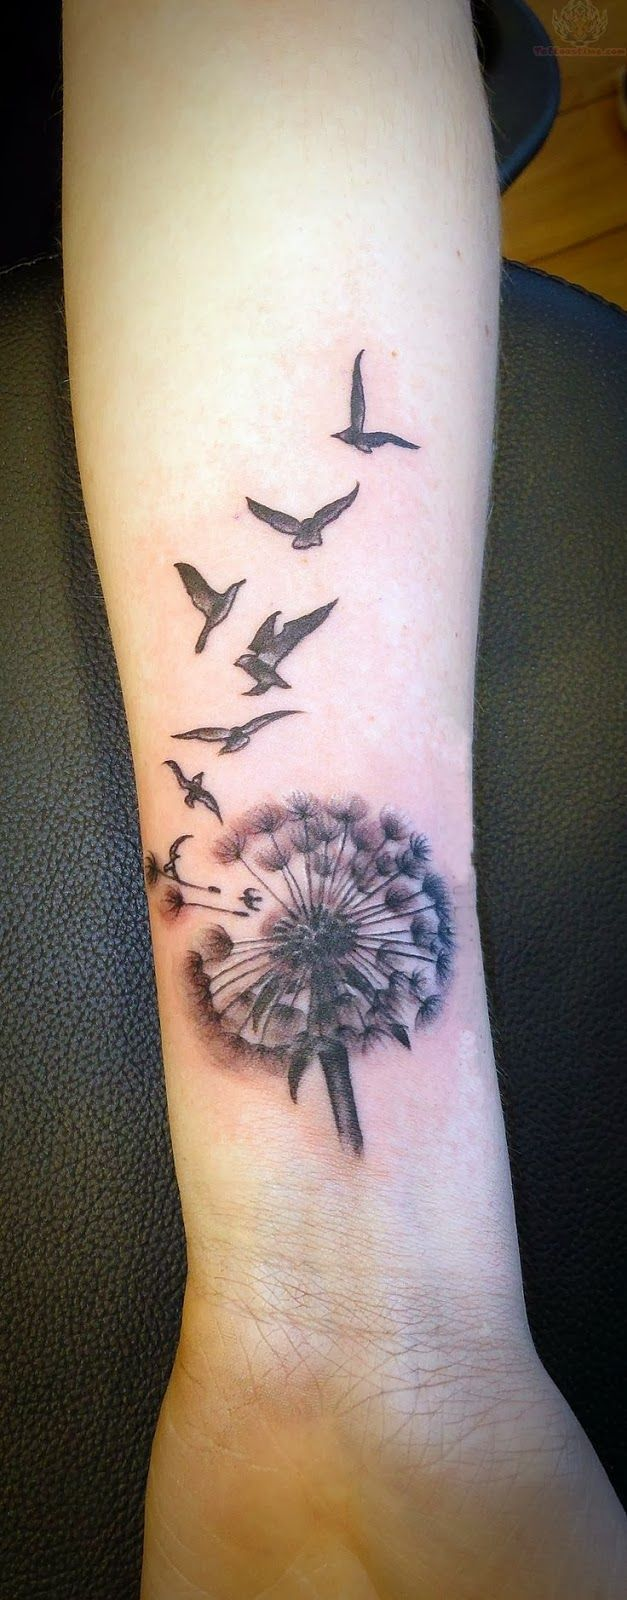 Bird tattoos designs ideas and meaning tattoos for you - 25 Most Beautiful Wrist Tattoos For Men